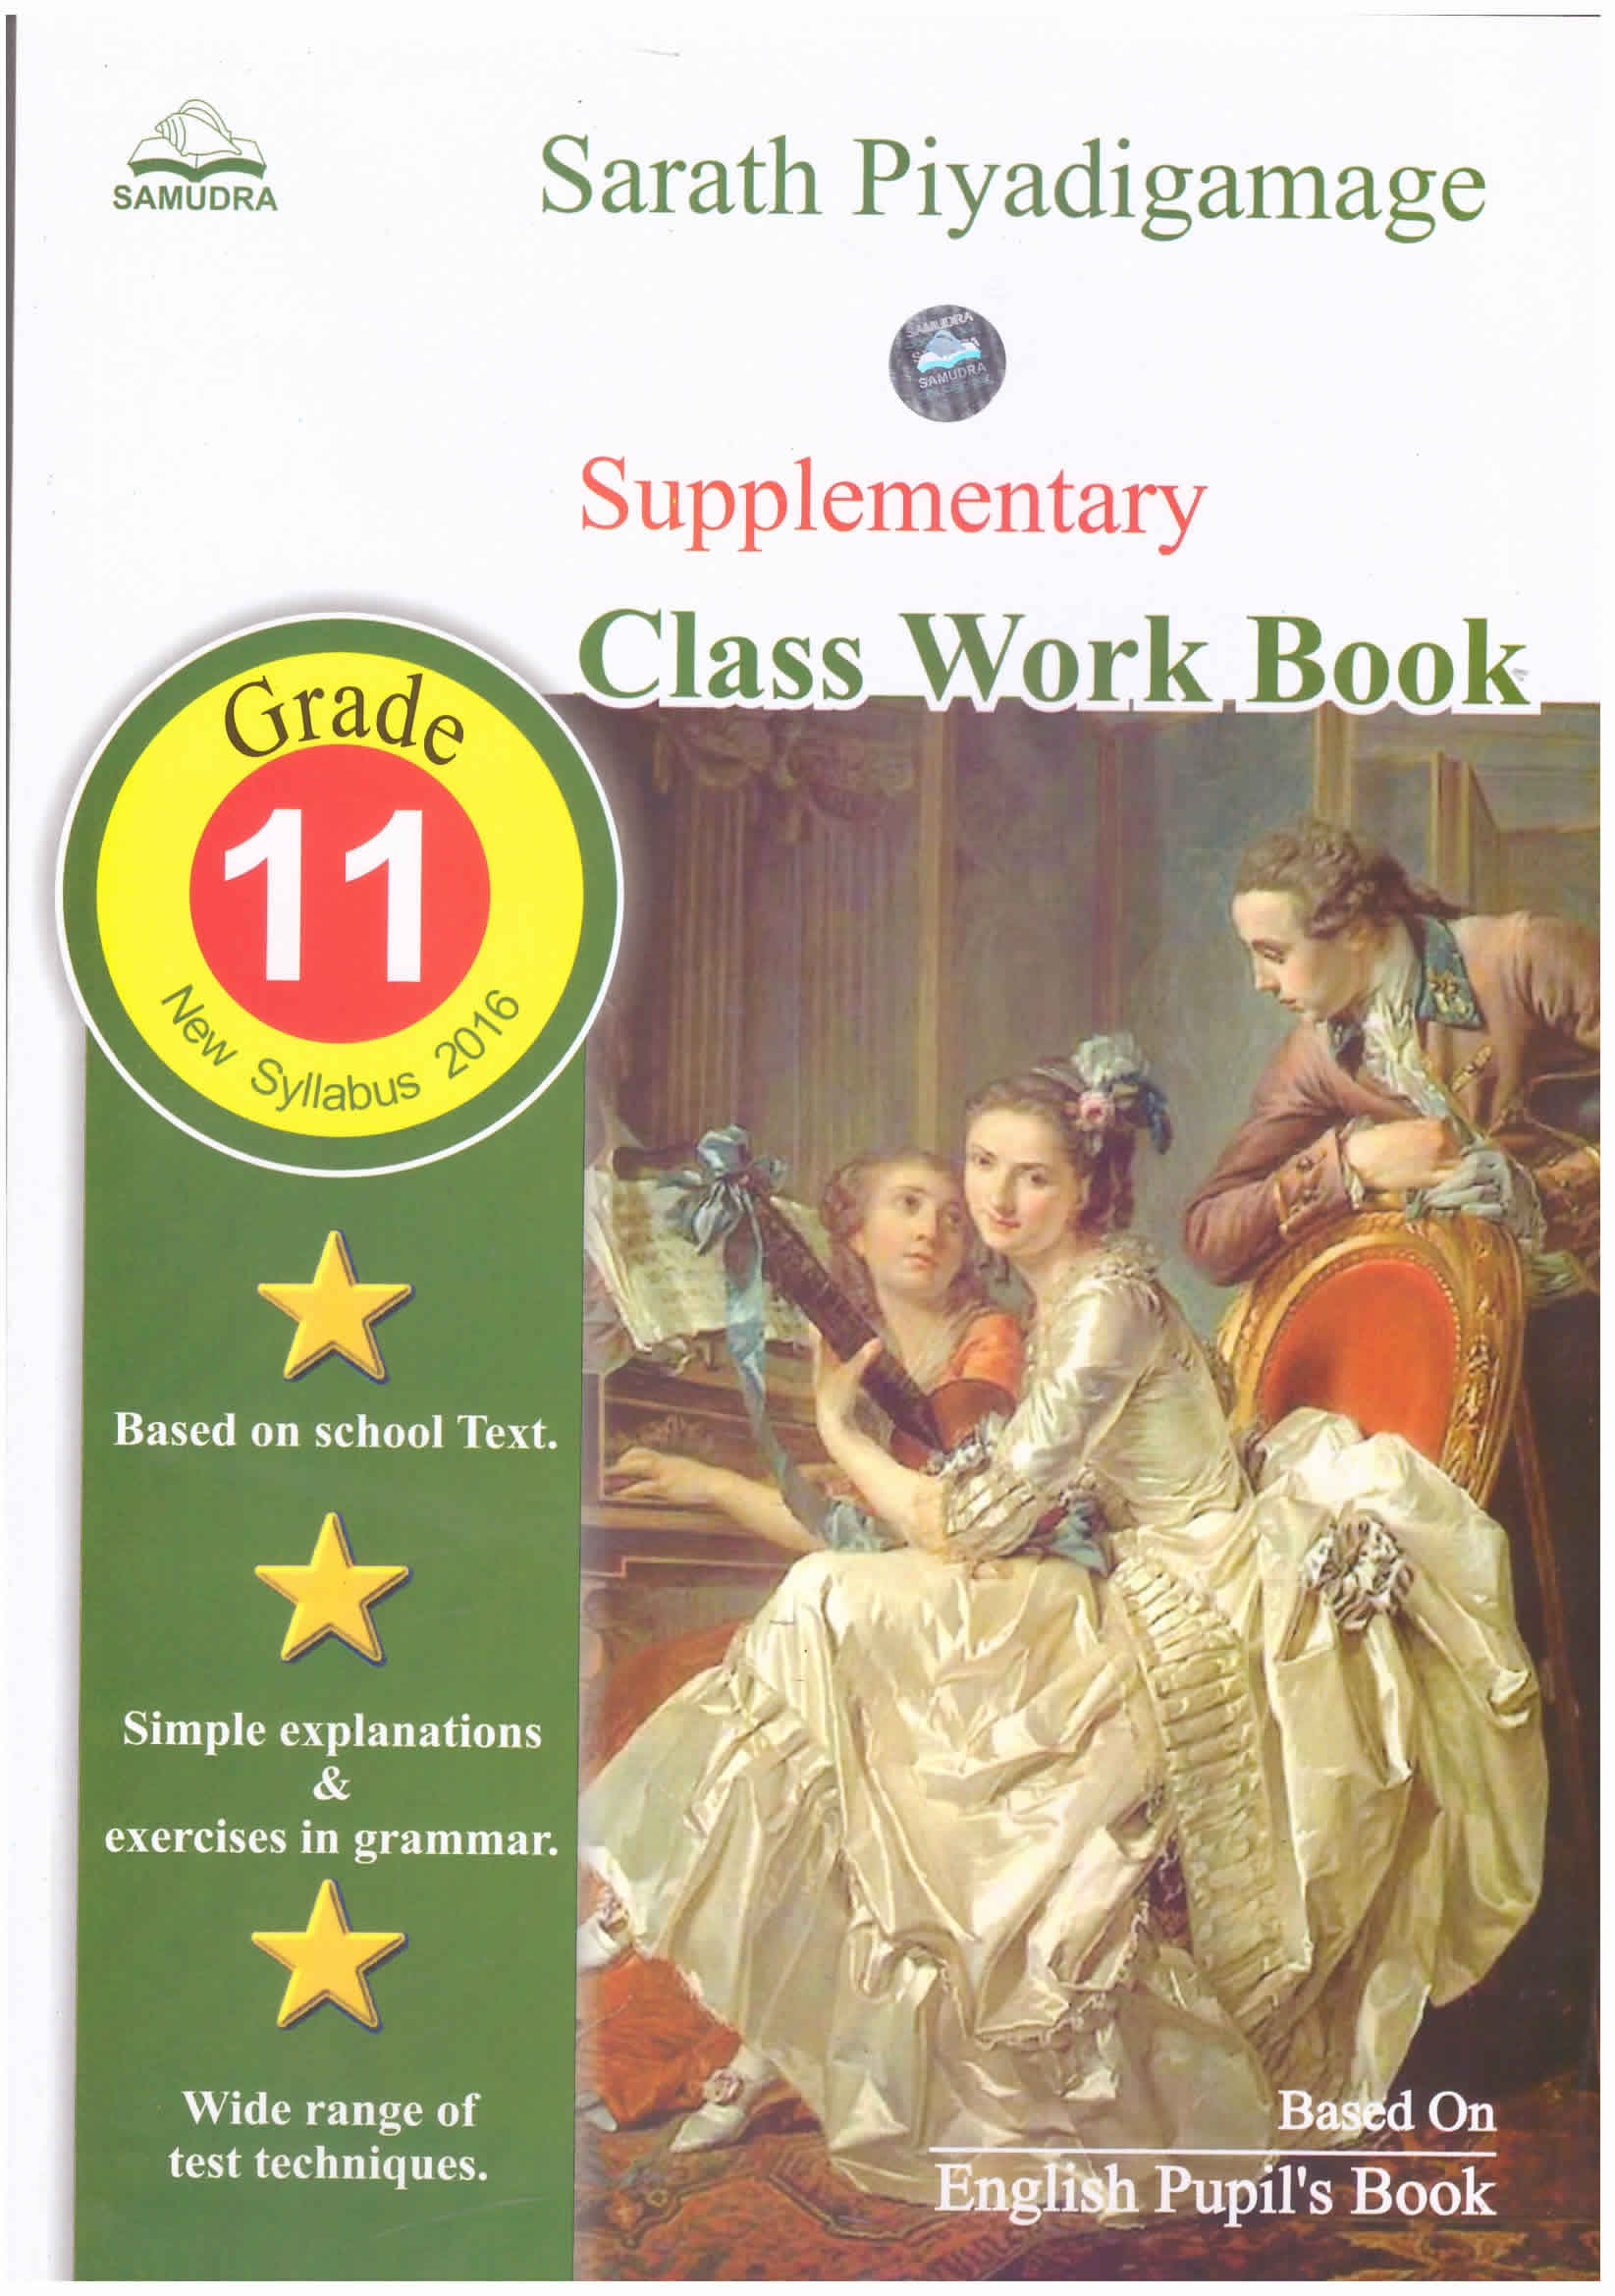 Supplementary Class Work Book-Grade 11